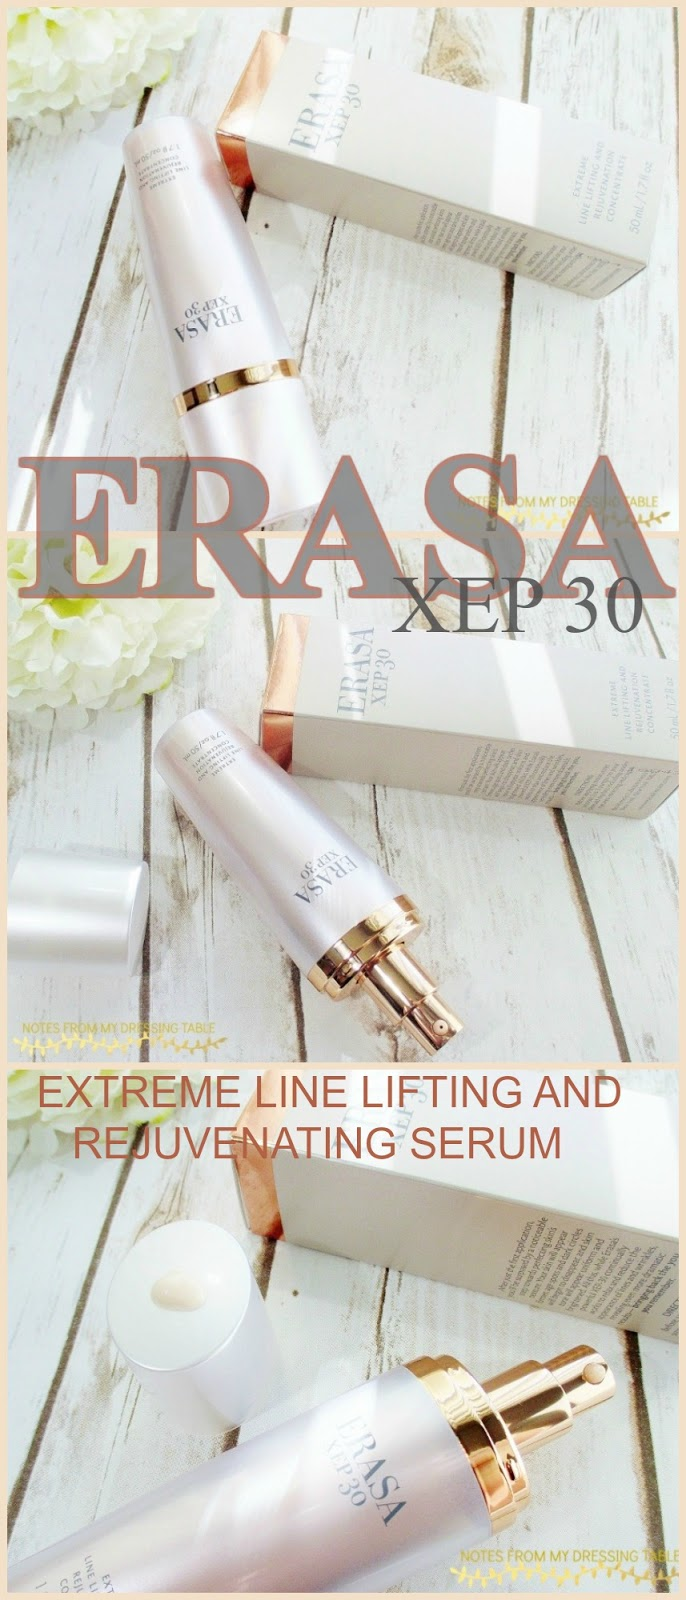 erasa-xep30-extreme-line-lifting-and-rejuvenation-concentrate-4